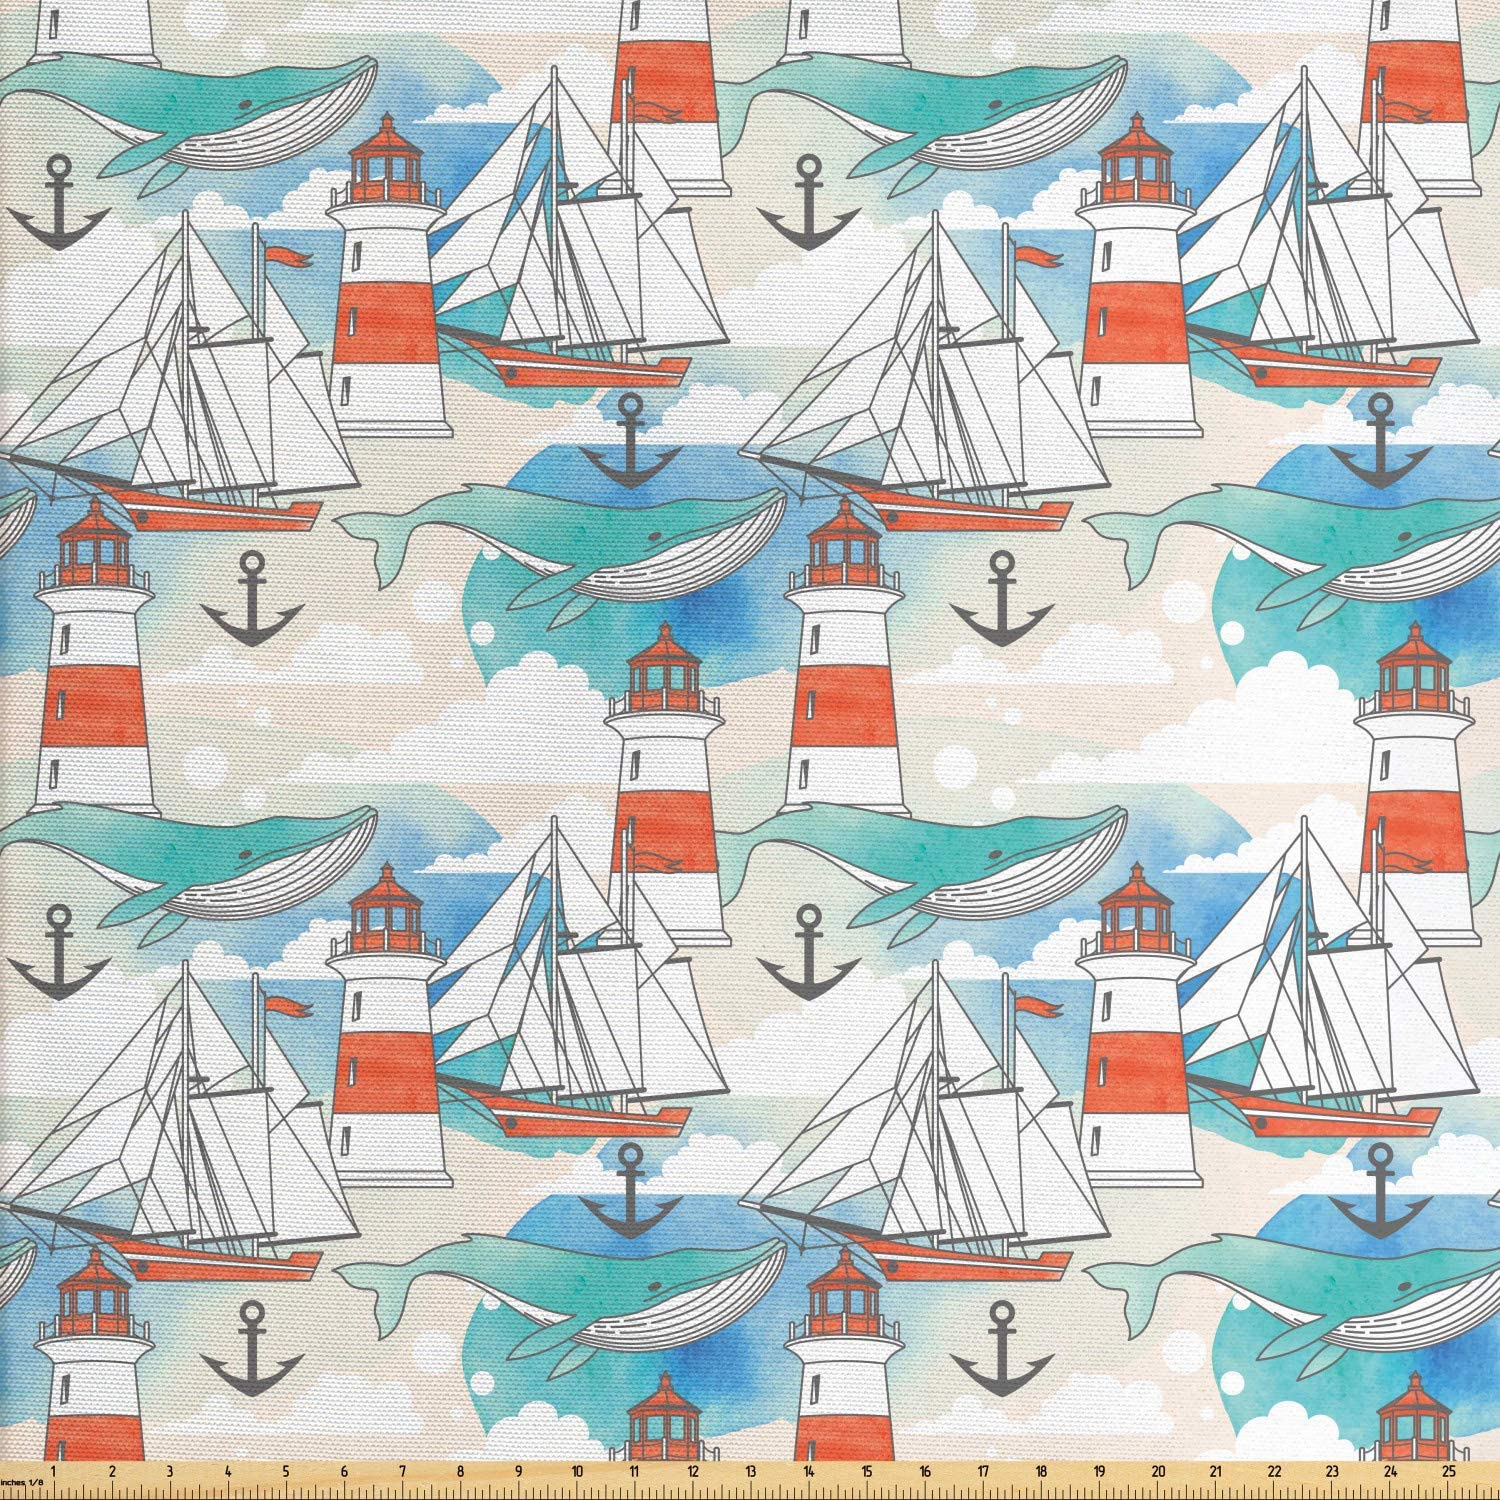 Ambesonne Lighthouse Fabric by The Yard, Abstract Whale Anchor and Boats Pattern Sky Inspired Background Nautical Design, Decorative Fabric for Upholstery and Home Accents, 3 Yards, Seafoam Champagne